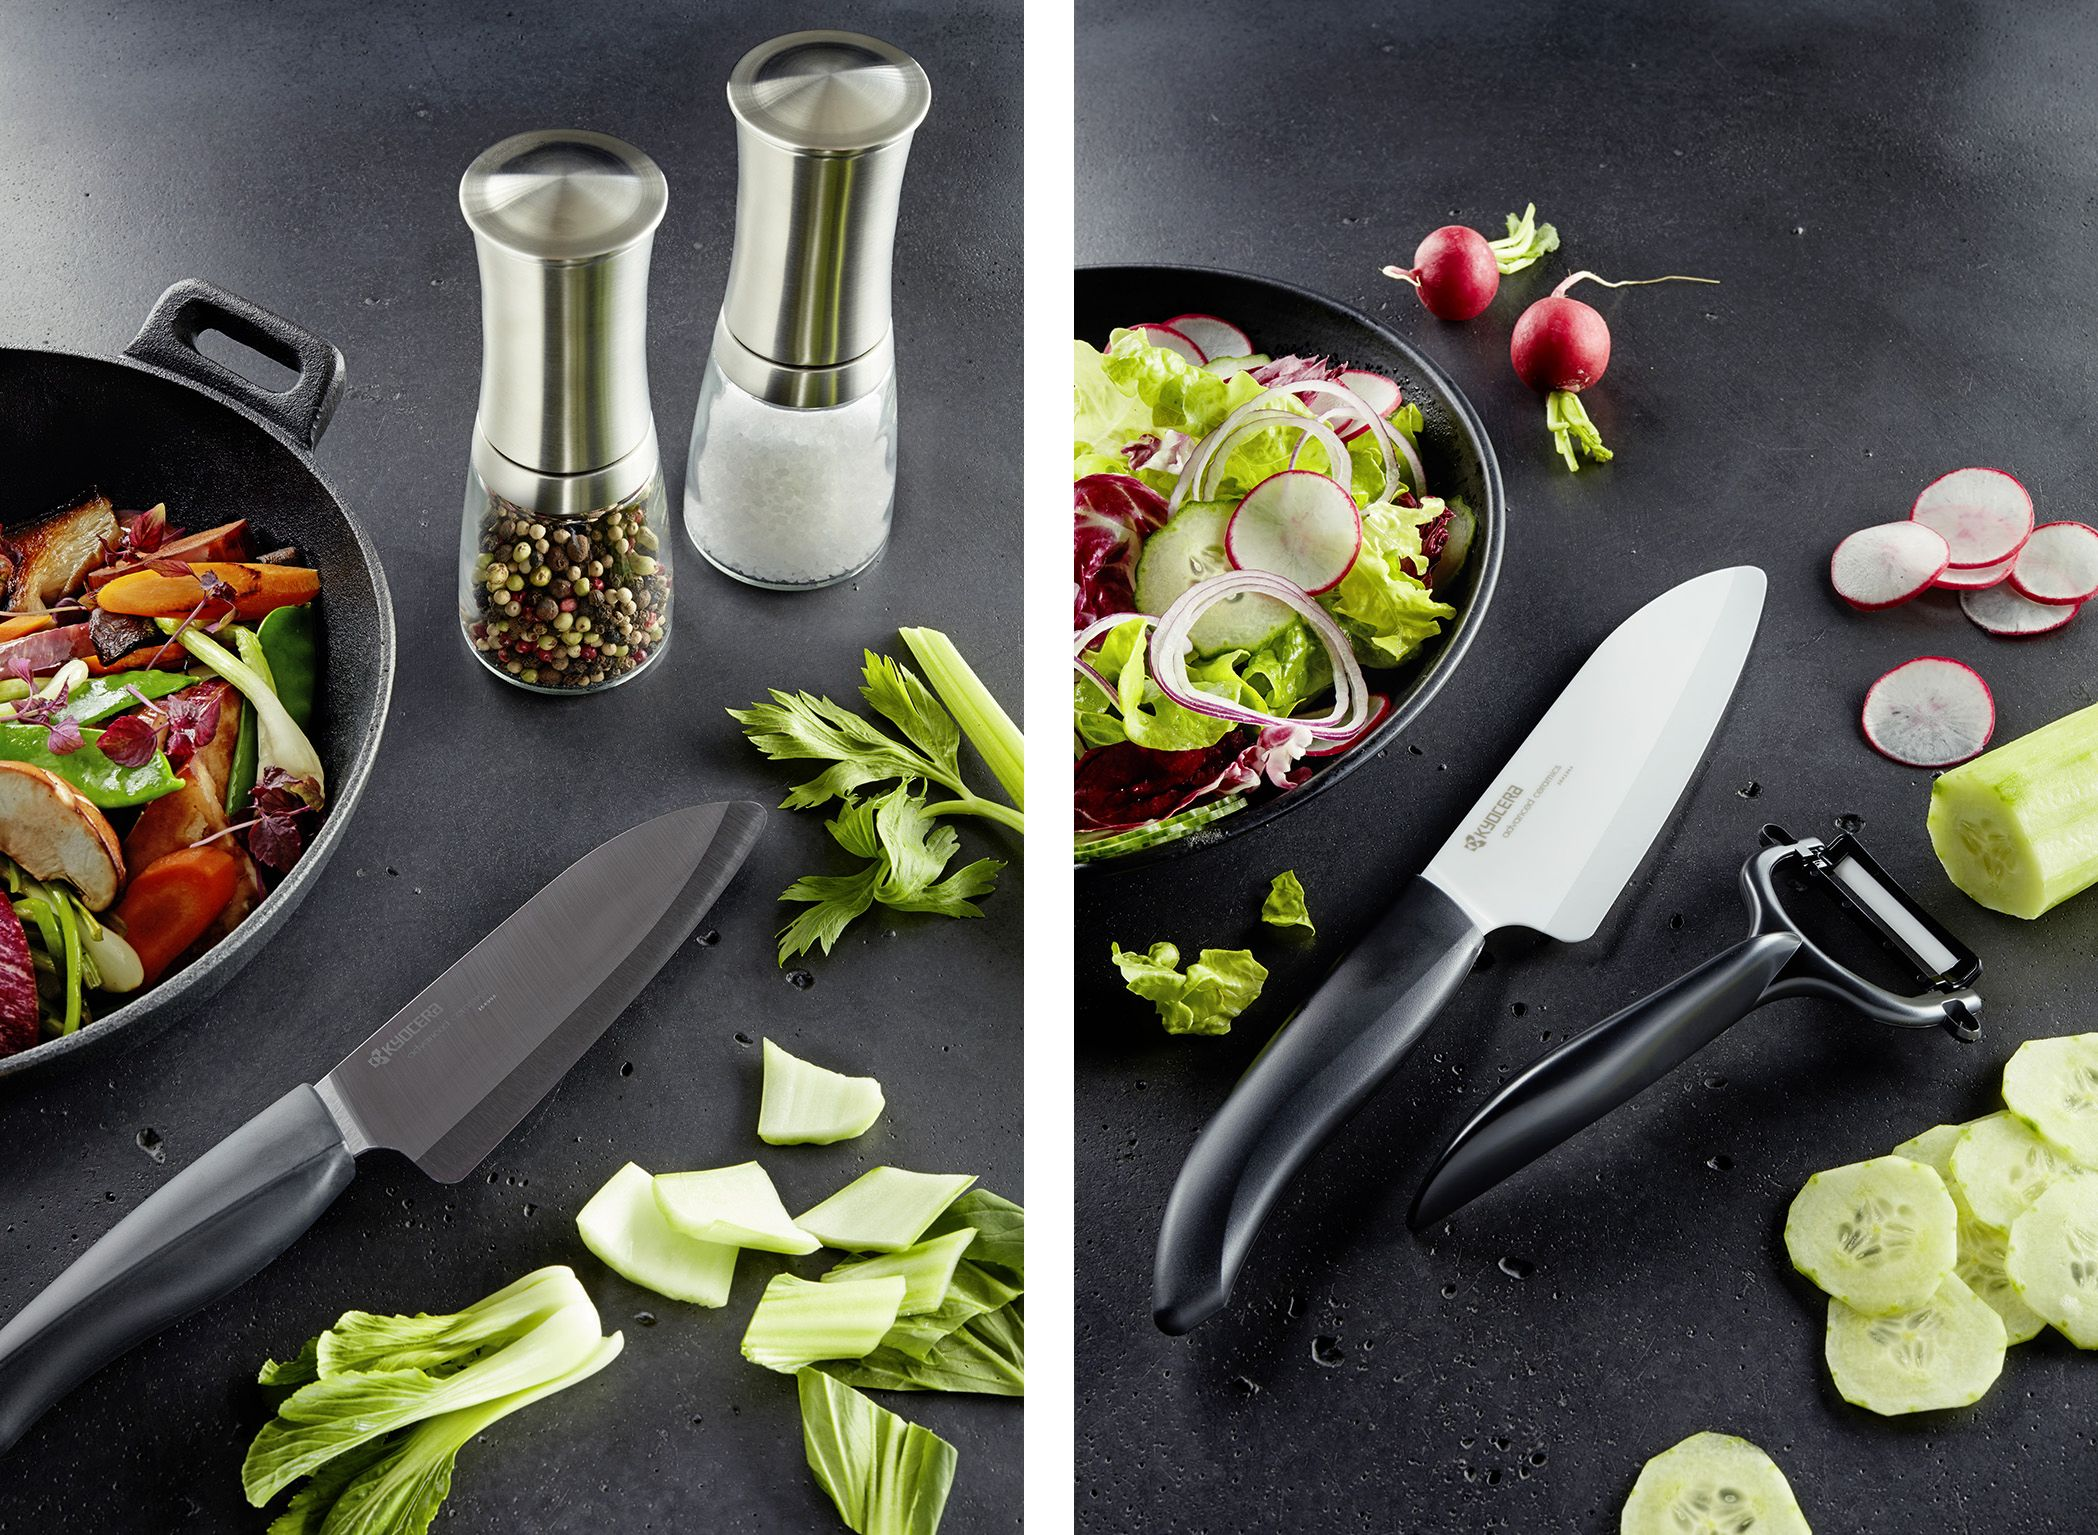 Innovative__durable__and_beautiful__Kyocera_presents_high-quality_kitchen_tools_at_the_BBC_Good_Food_Show.jpg